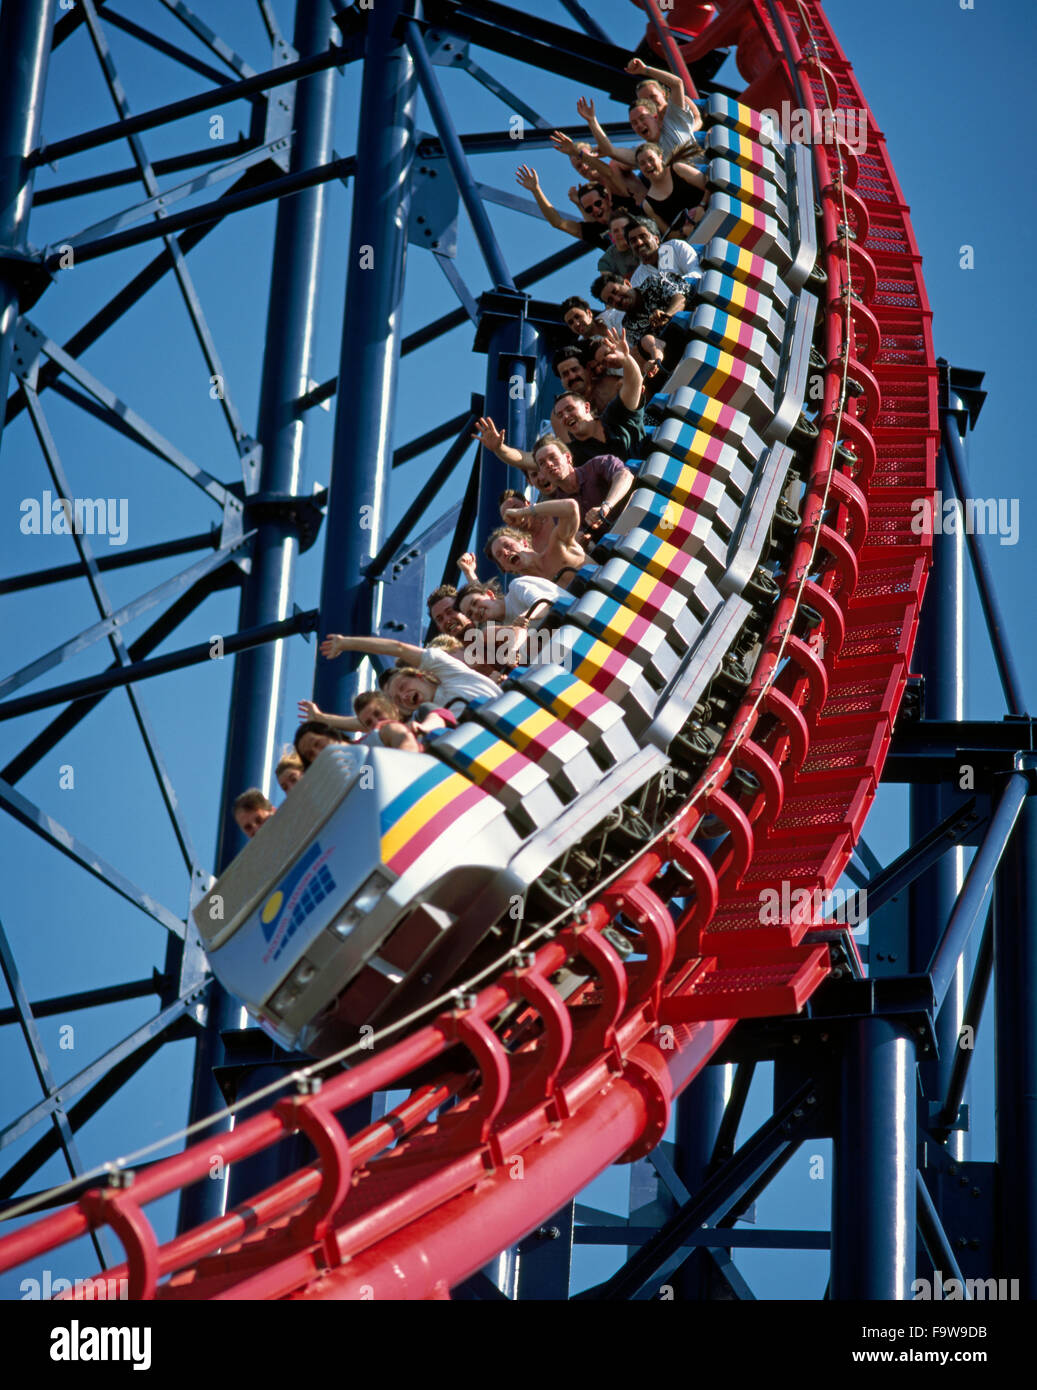 The 'Big One' Amusement ride at Blackpool Pleasure Beach, Blackpool, Lancashire England UK - Stock Image